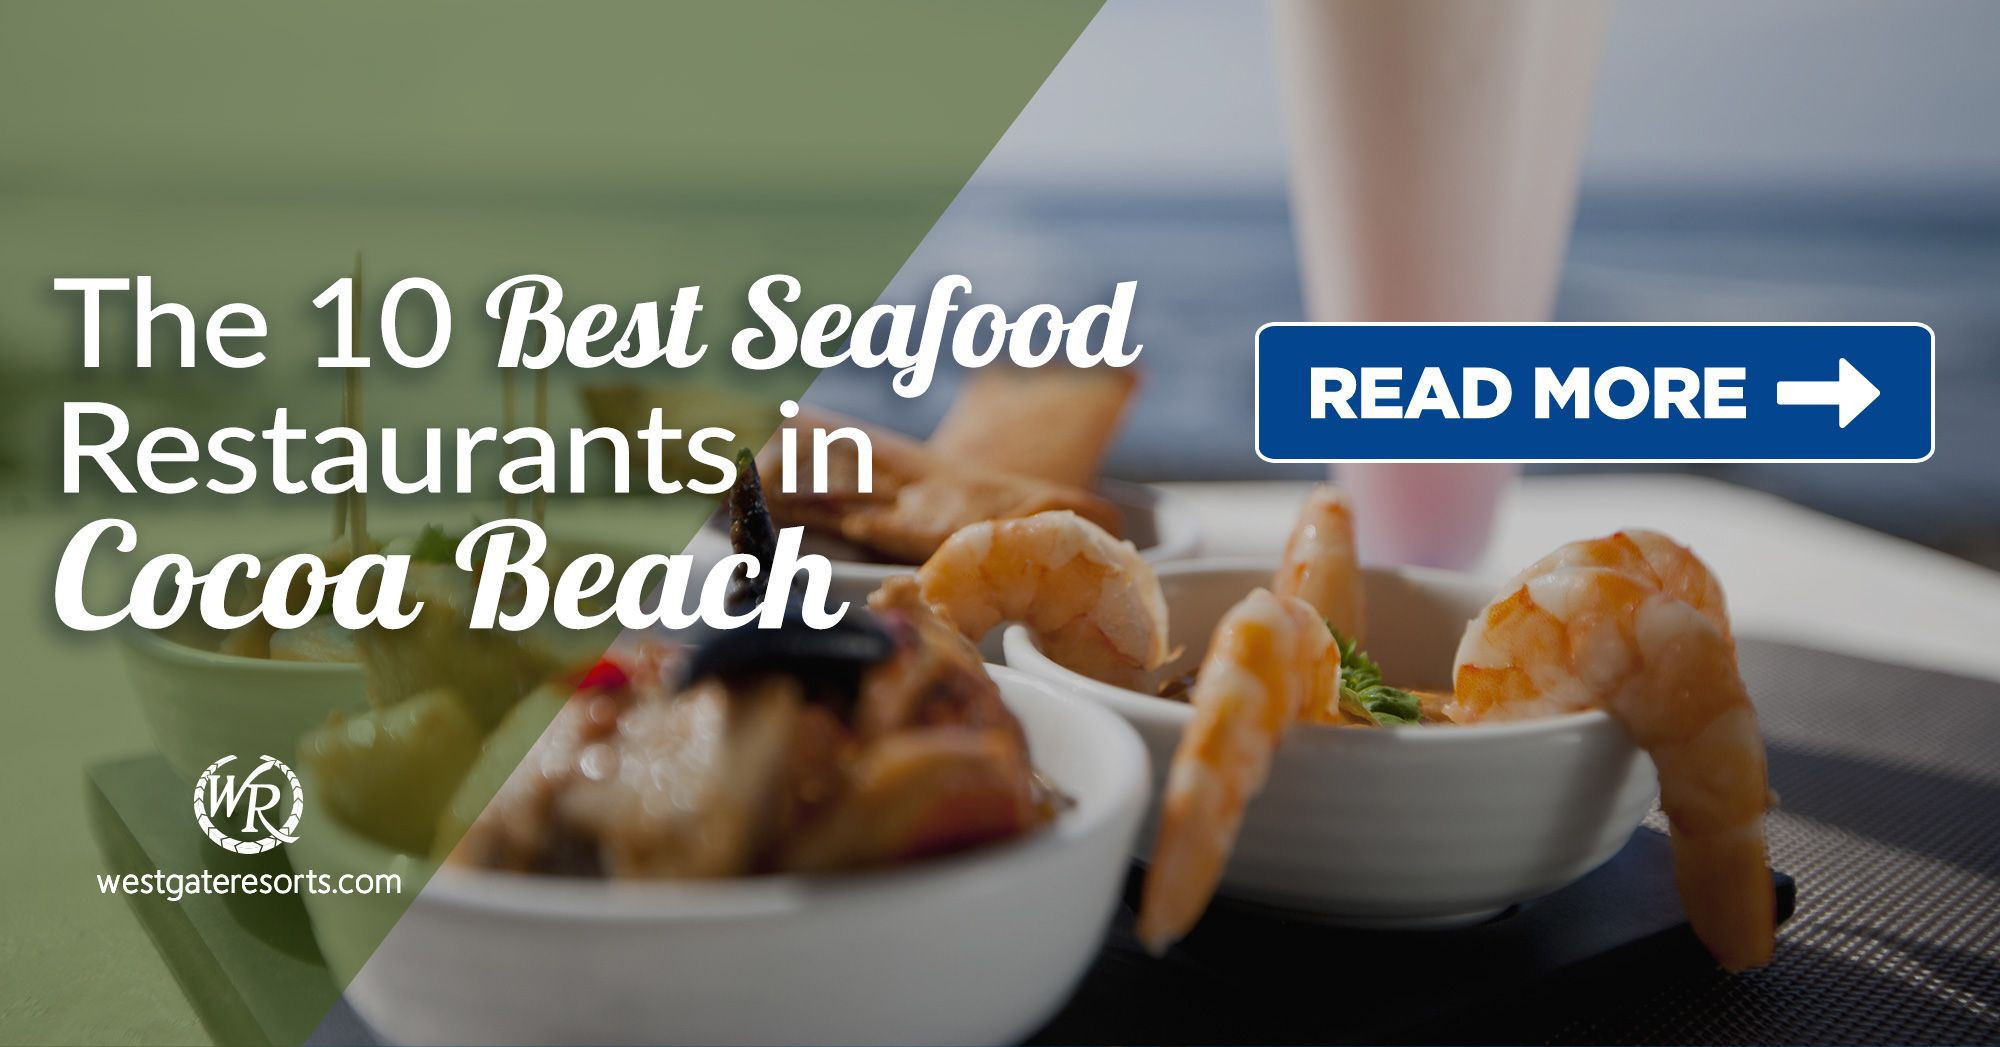 The 10 Best Seafood Restaurants in Cocoa Beach